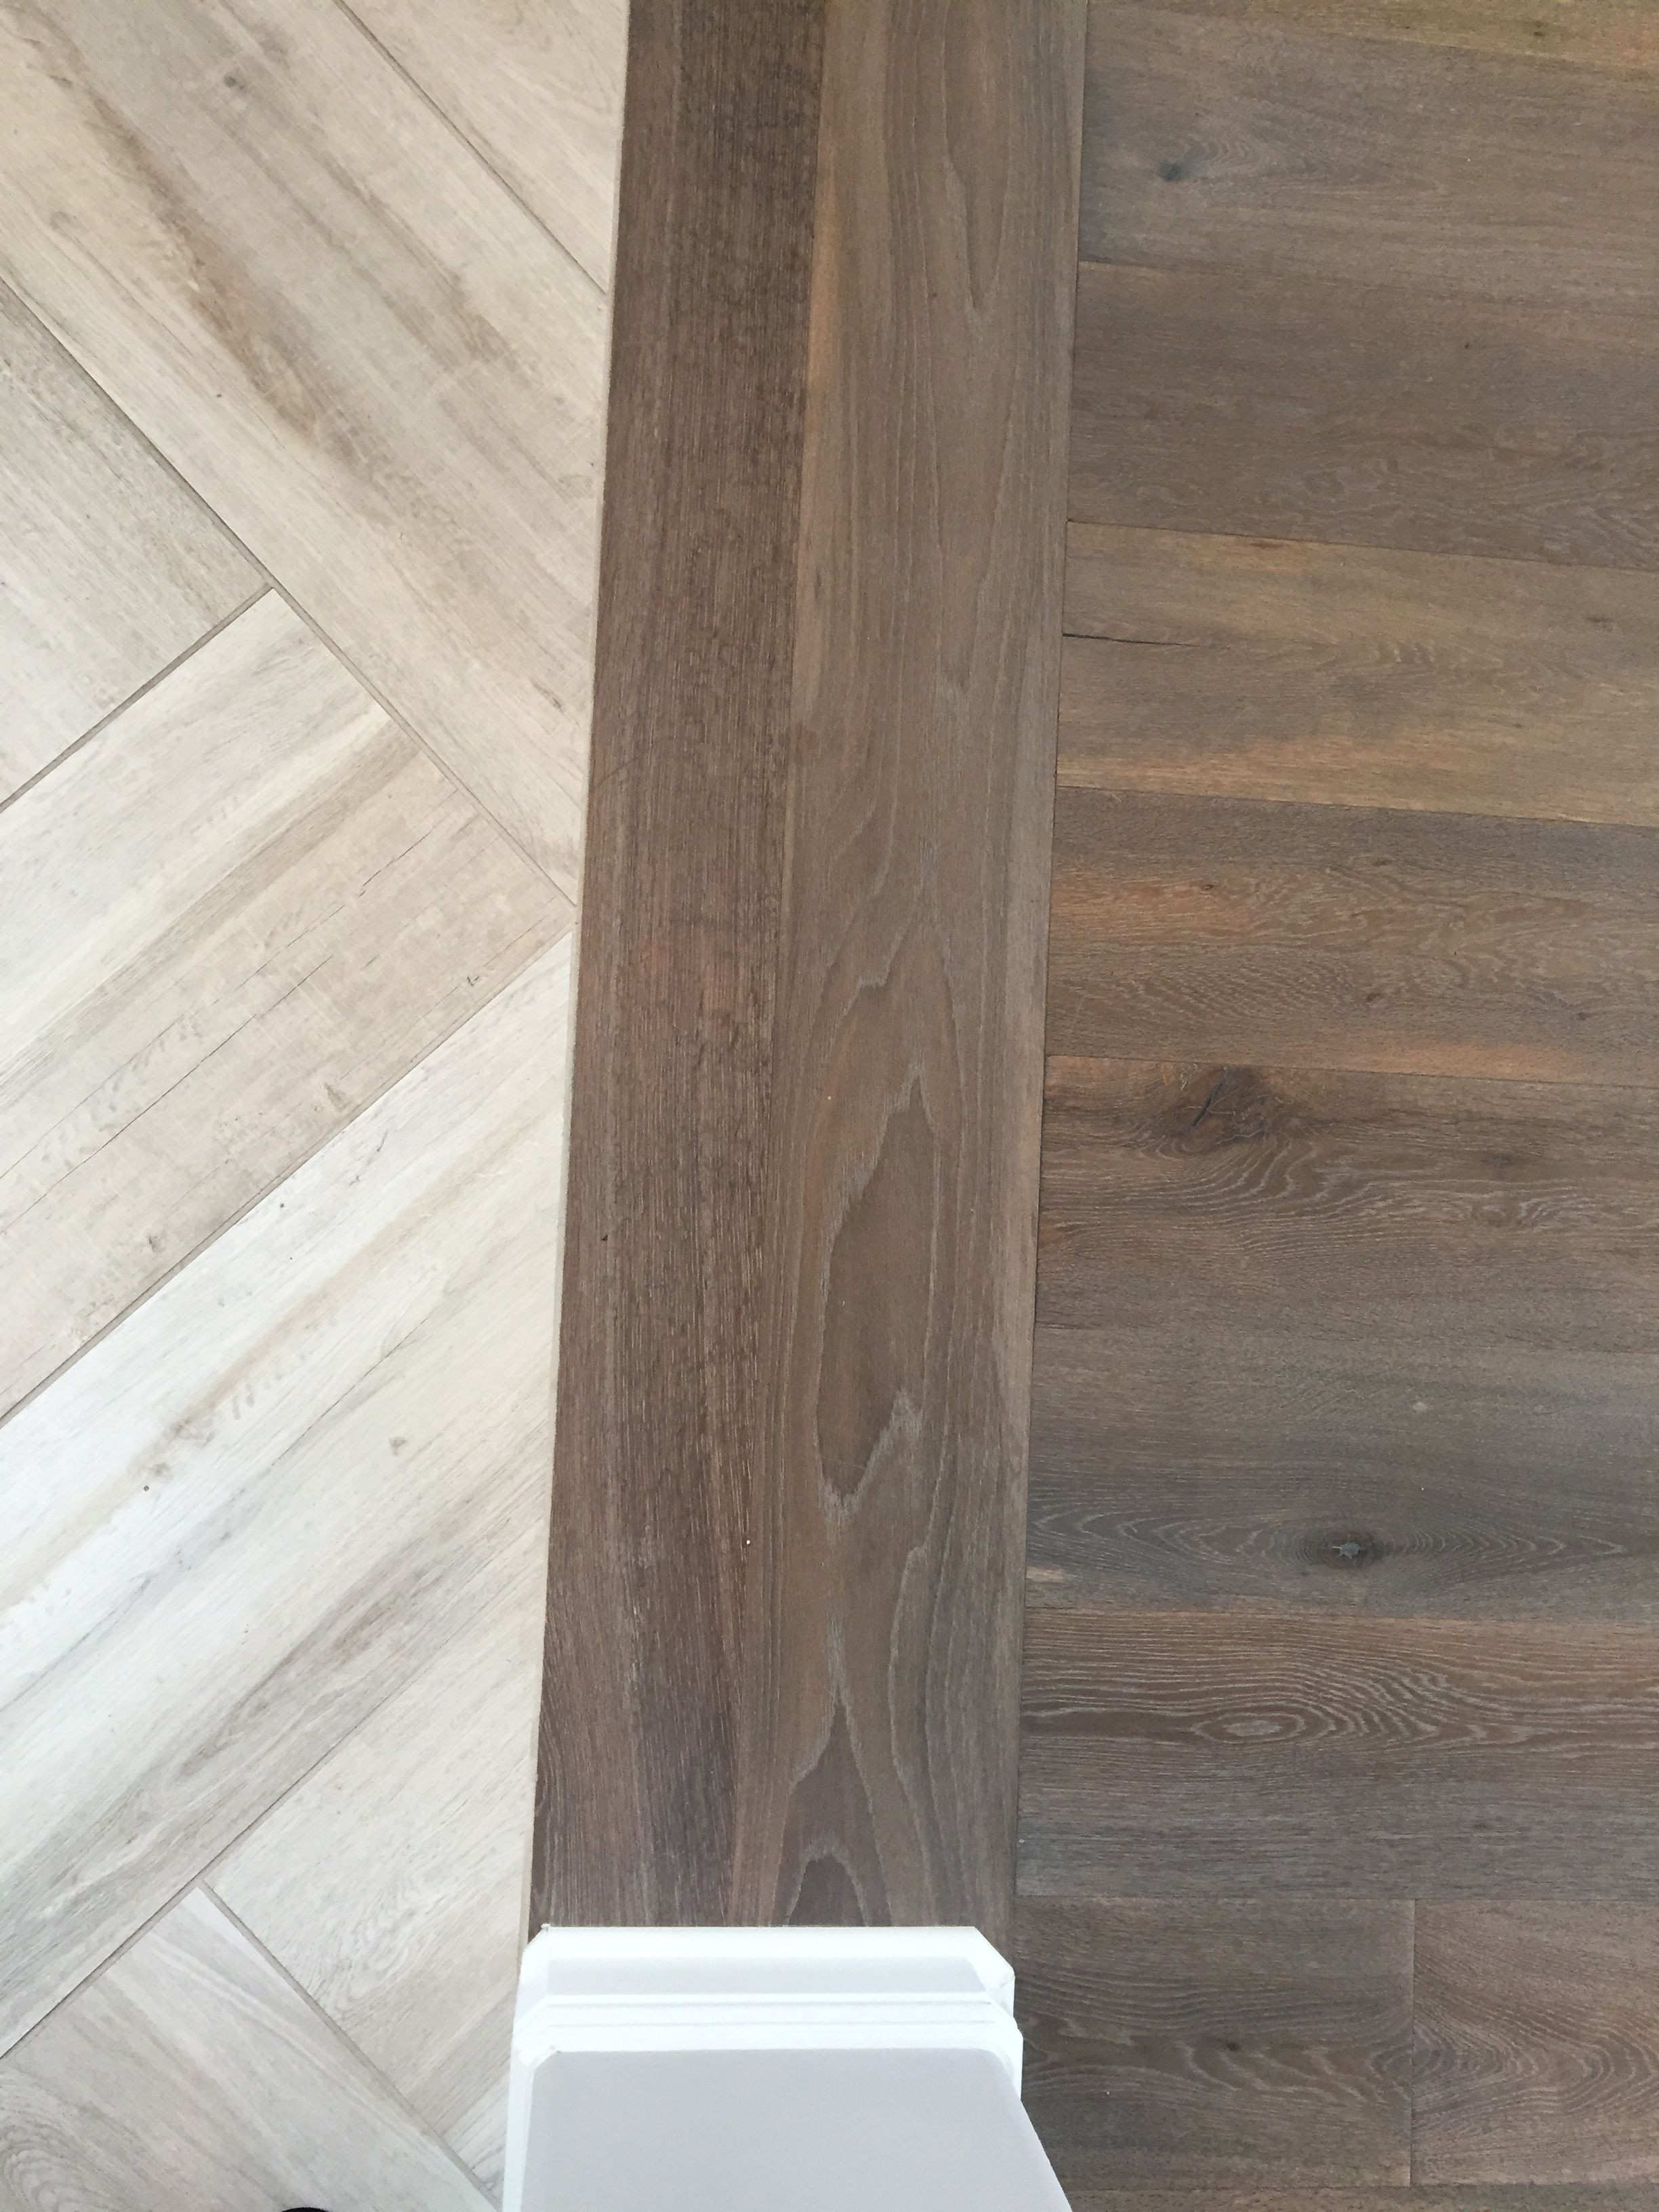 hardwood parquet flooring uk of floor transition laminate to herringbone tile pattern model with floor transition laminate to herringbone tile pattern herringbone tile pattern herringbone wood floor